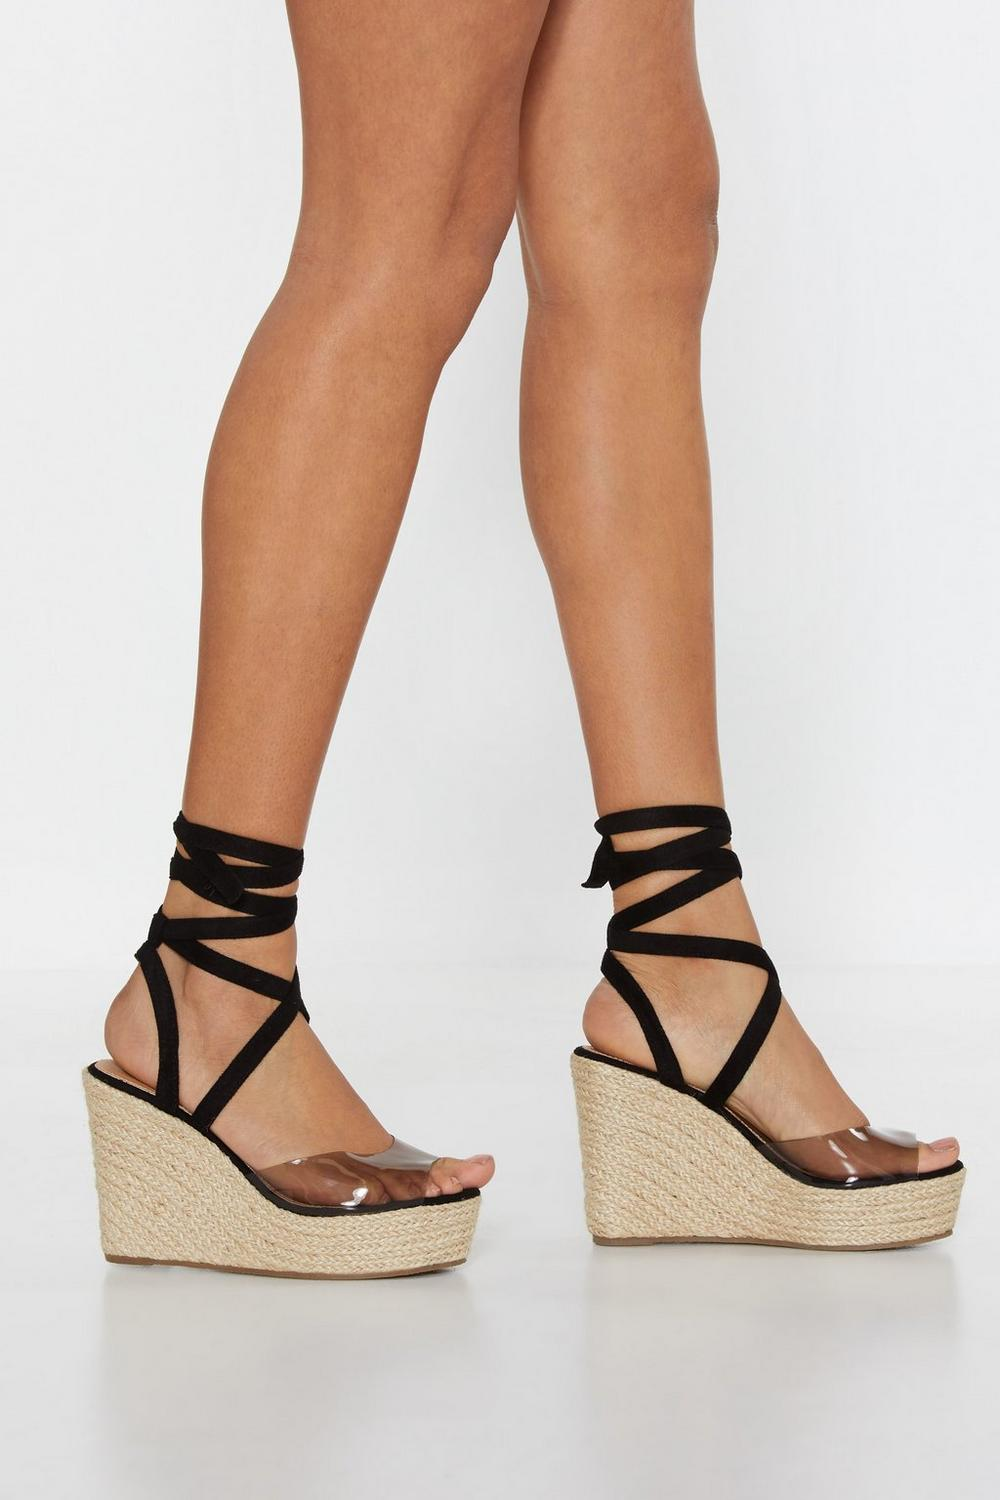 37faa14b192 Going Round in Ankles Espadrille Wedges | Shop Clothes at Nasty Gal!